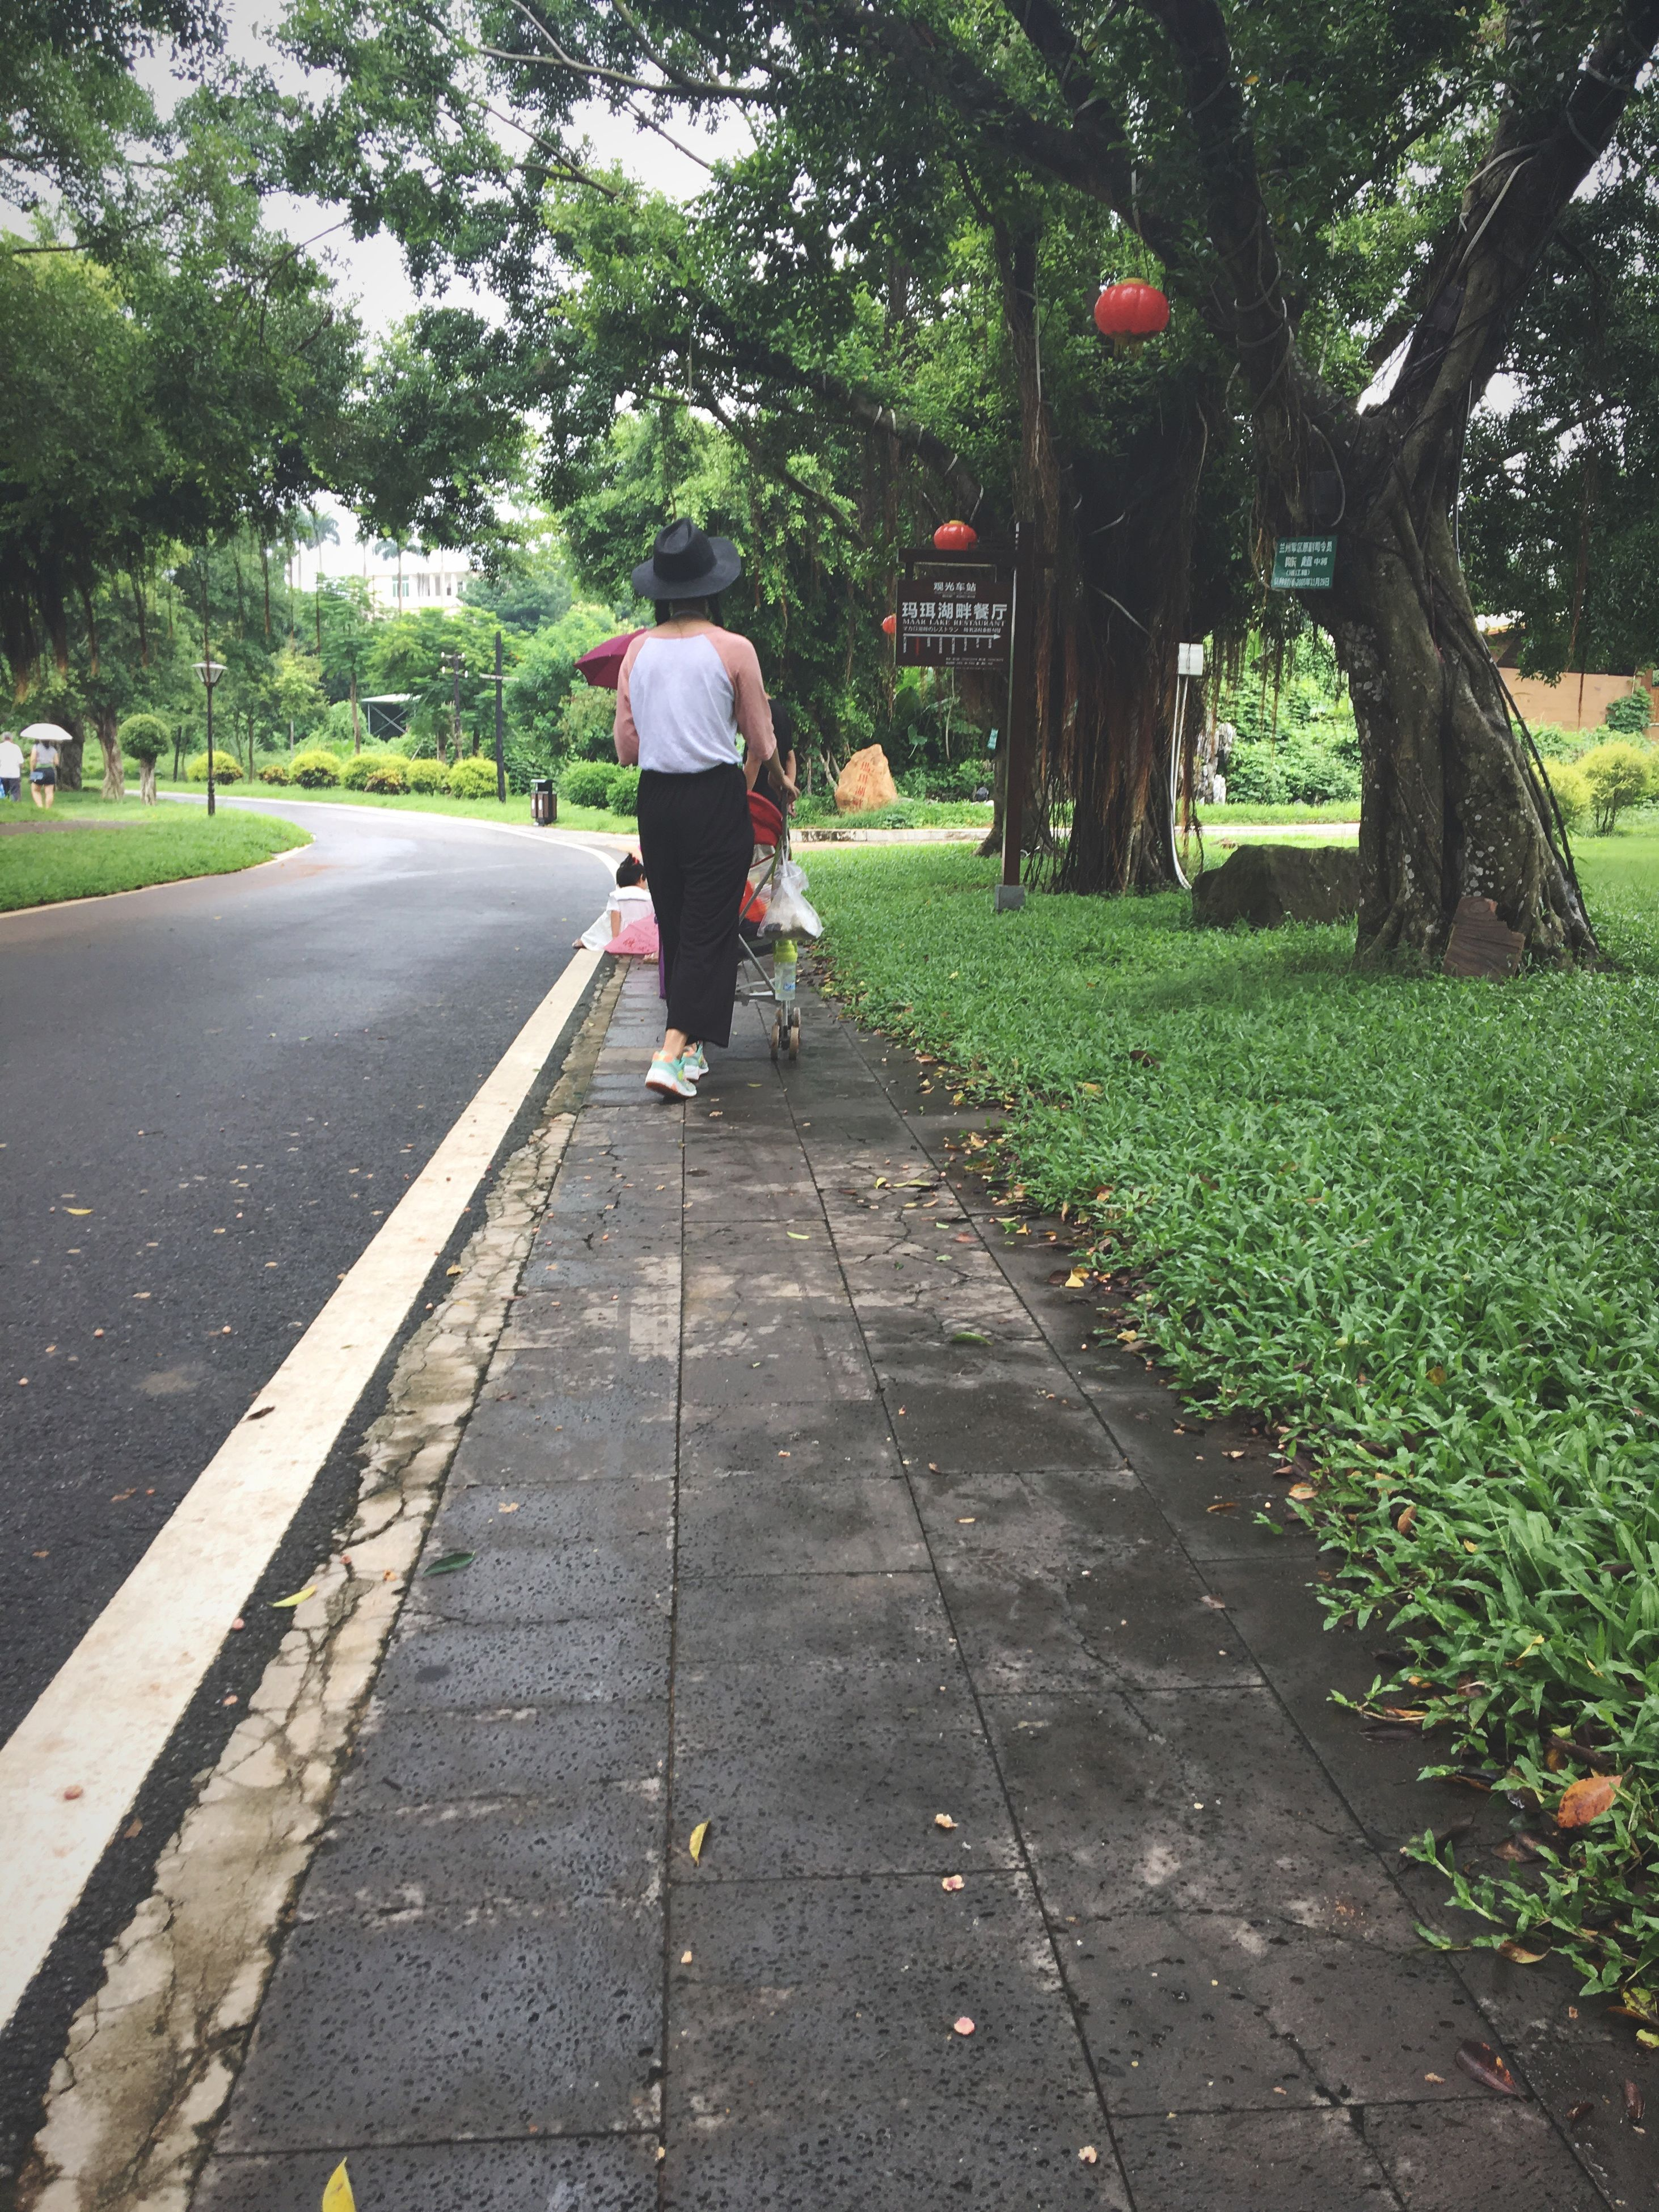 rear view, full length, tree, transportation, grass, road, lifestyles, the way forward, green color, casual clothing, growth, day, diminishing perspective, park, outdoors, footpath, vanishing point, country road